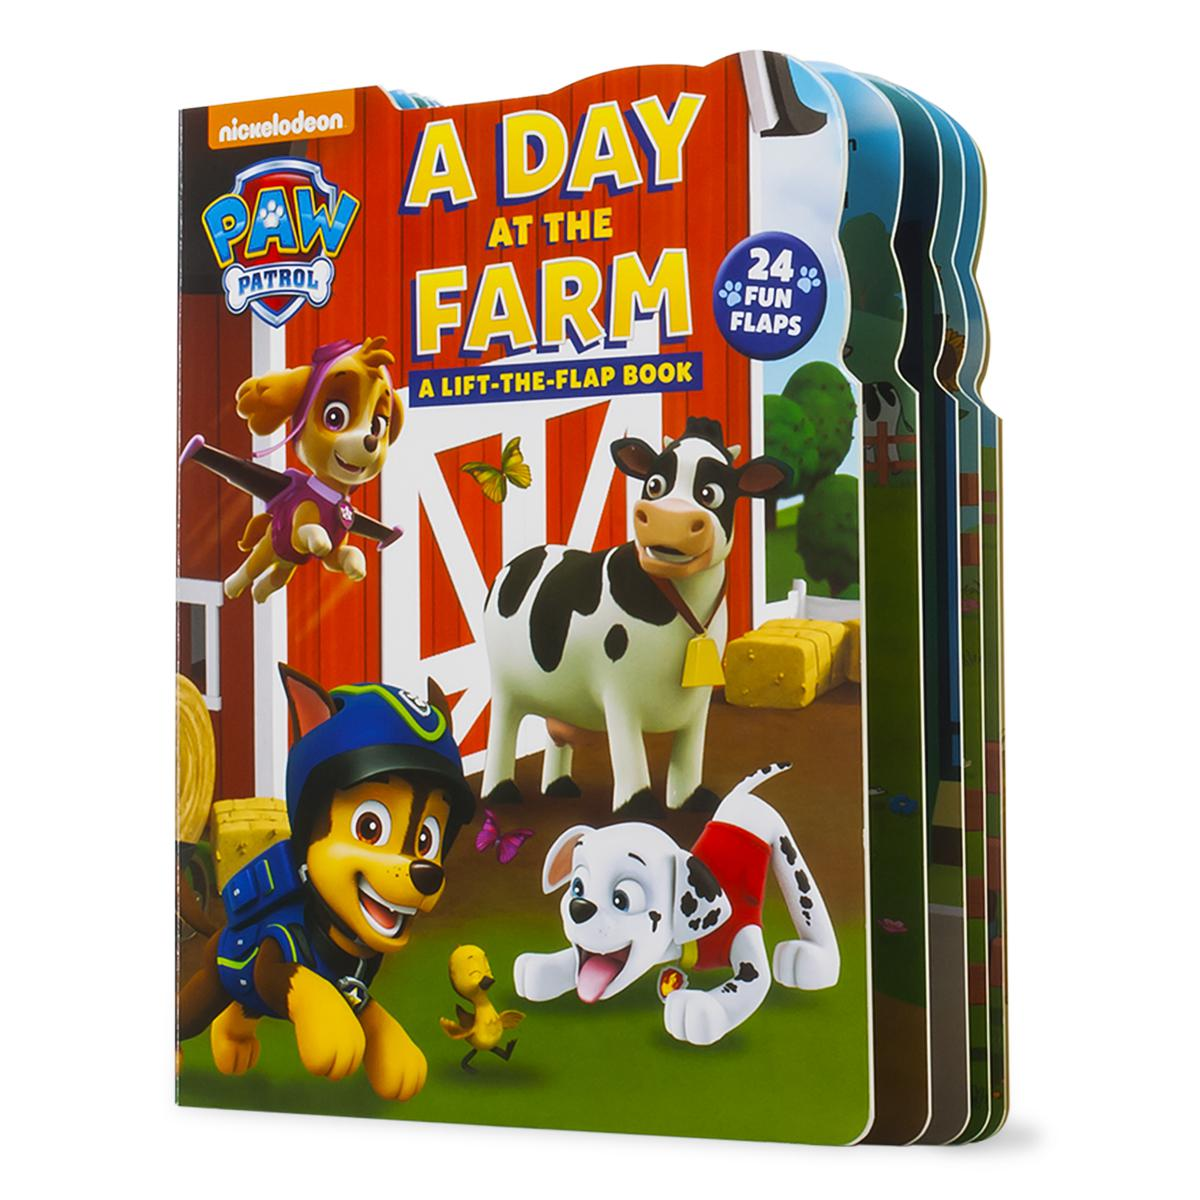 PAW Patrol: A Day at the Farm